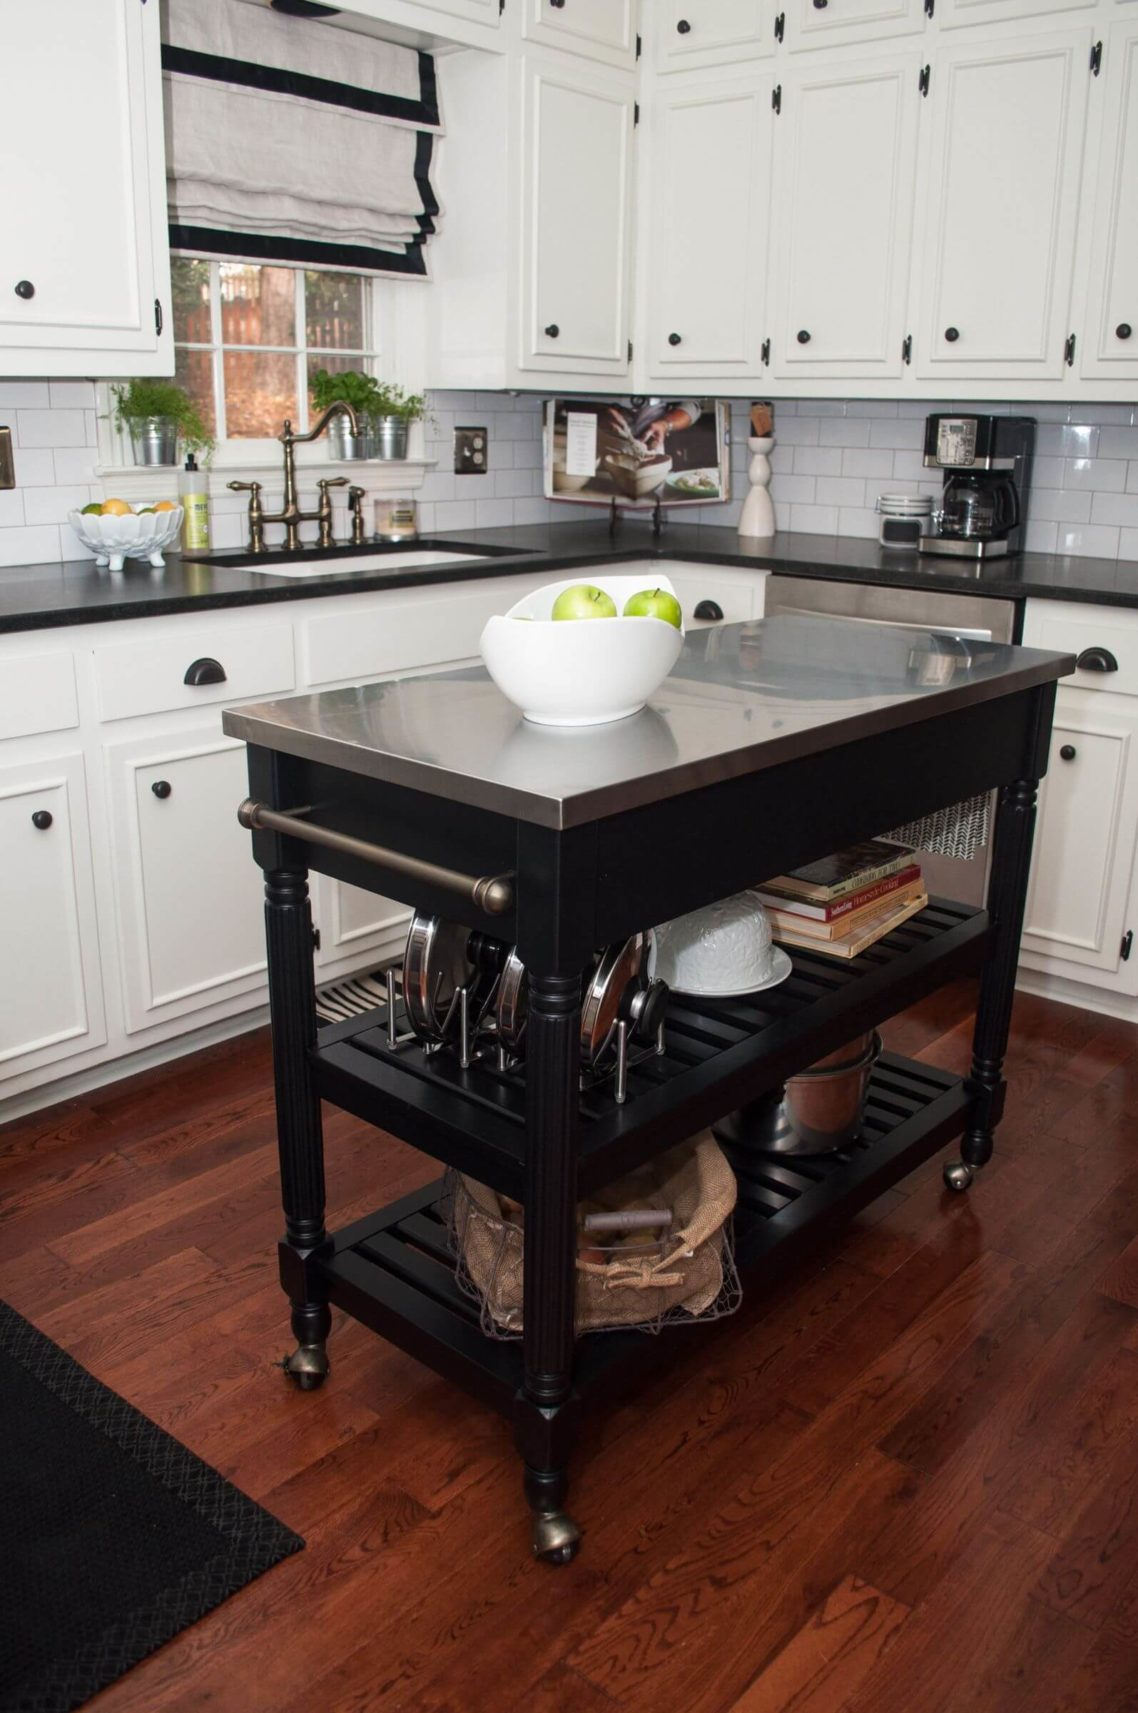 Gorgeous microwave cart ikea for kitchen furniture design with microwave cart with storage ikea